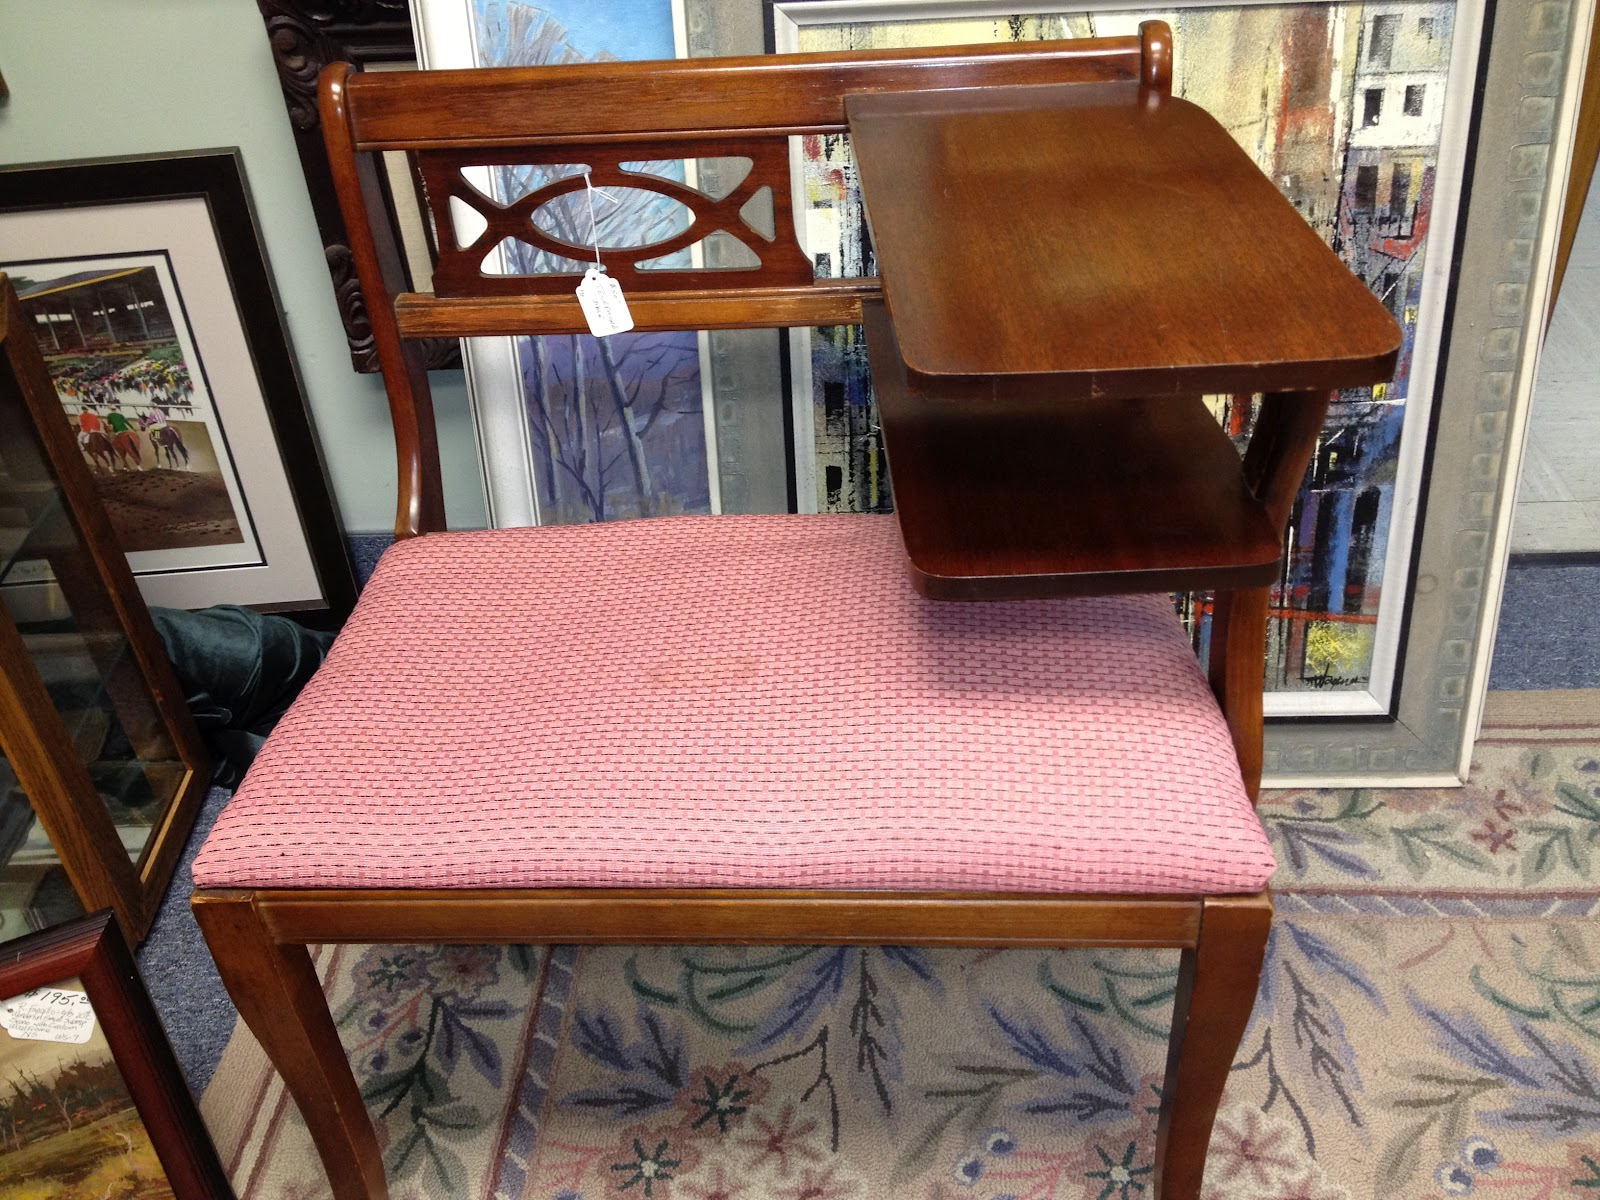 Attirant Vintage Telephone Table Or Gossip Bench: A Great Idea